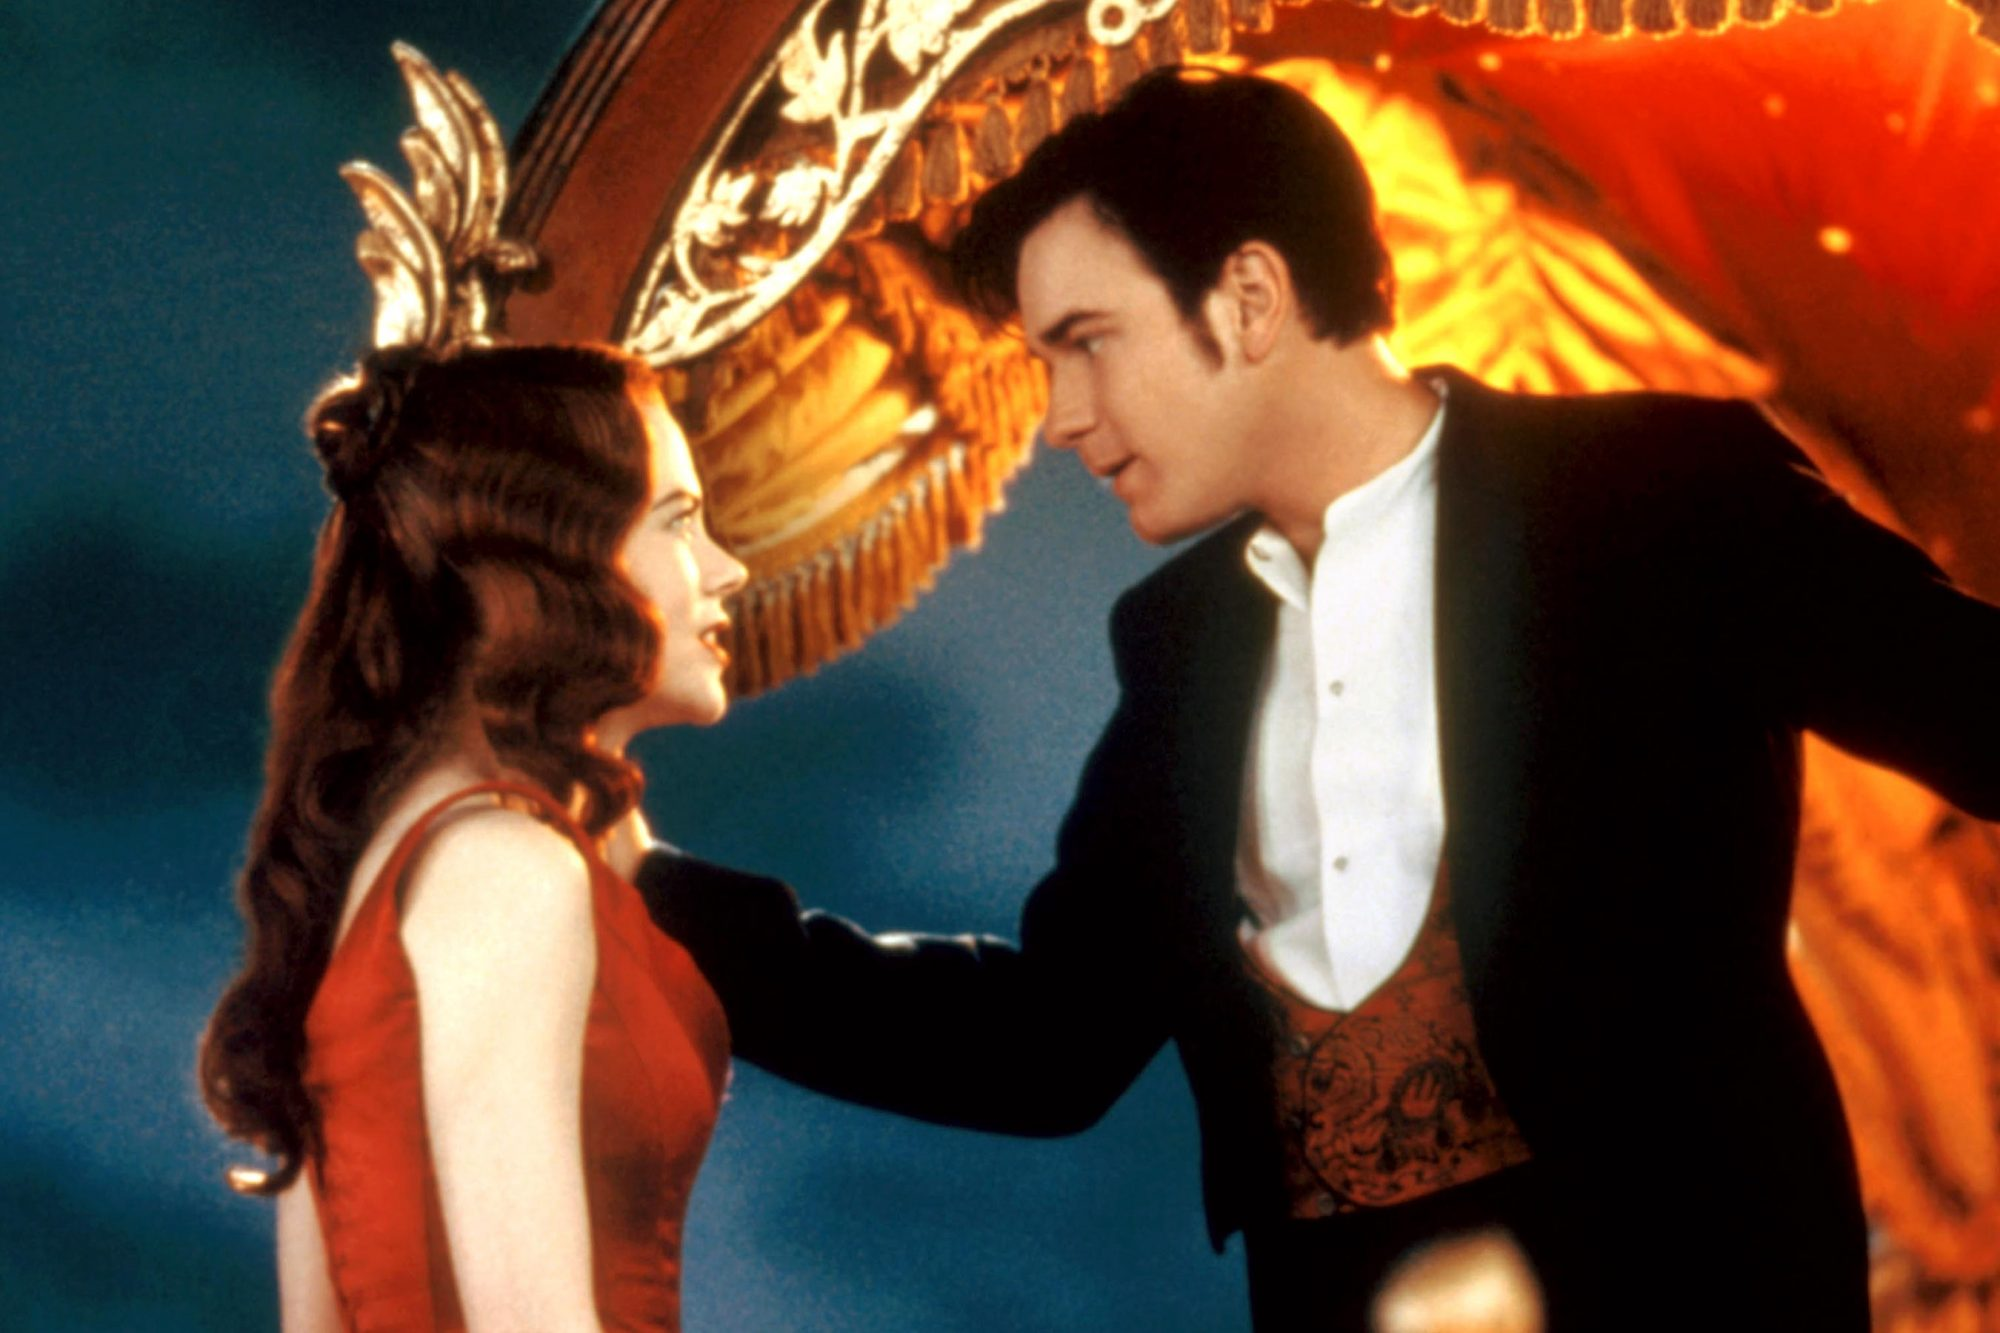 MOULIN ROUGE!, Nicole Kidman, Ewan McGregor, 2001, TM and Copyright (c)20th Century Fox Film Corp. All rights reserved.